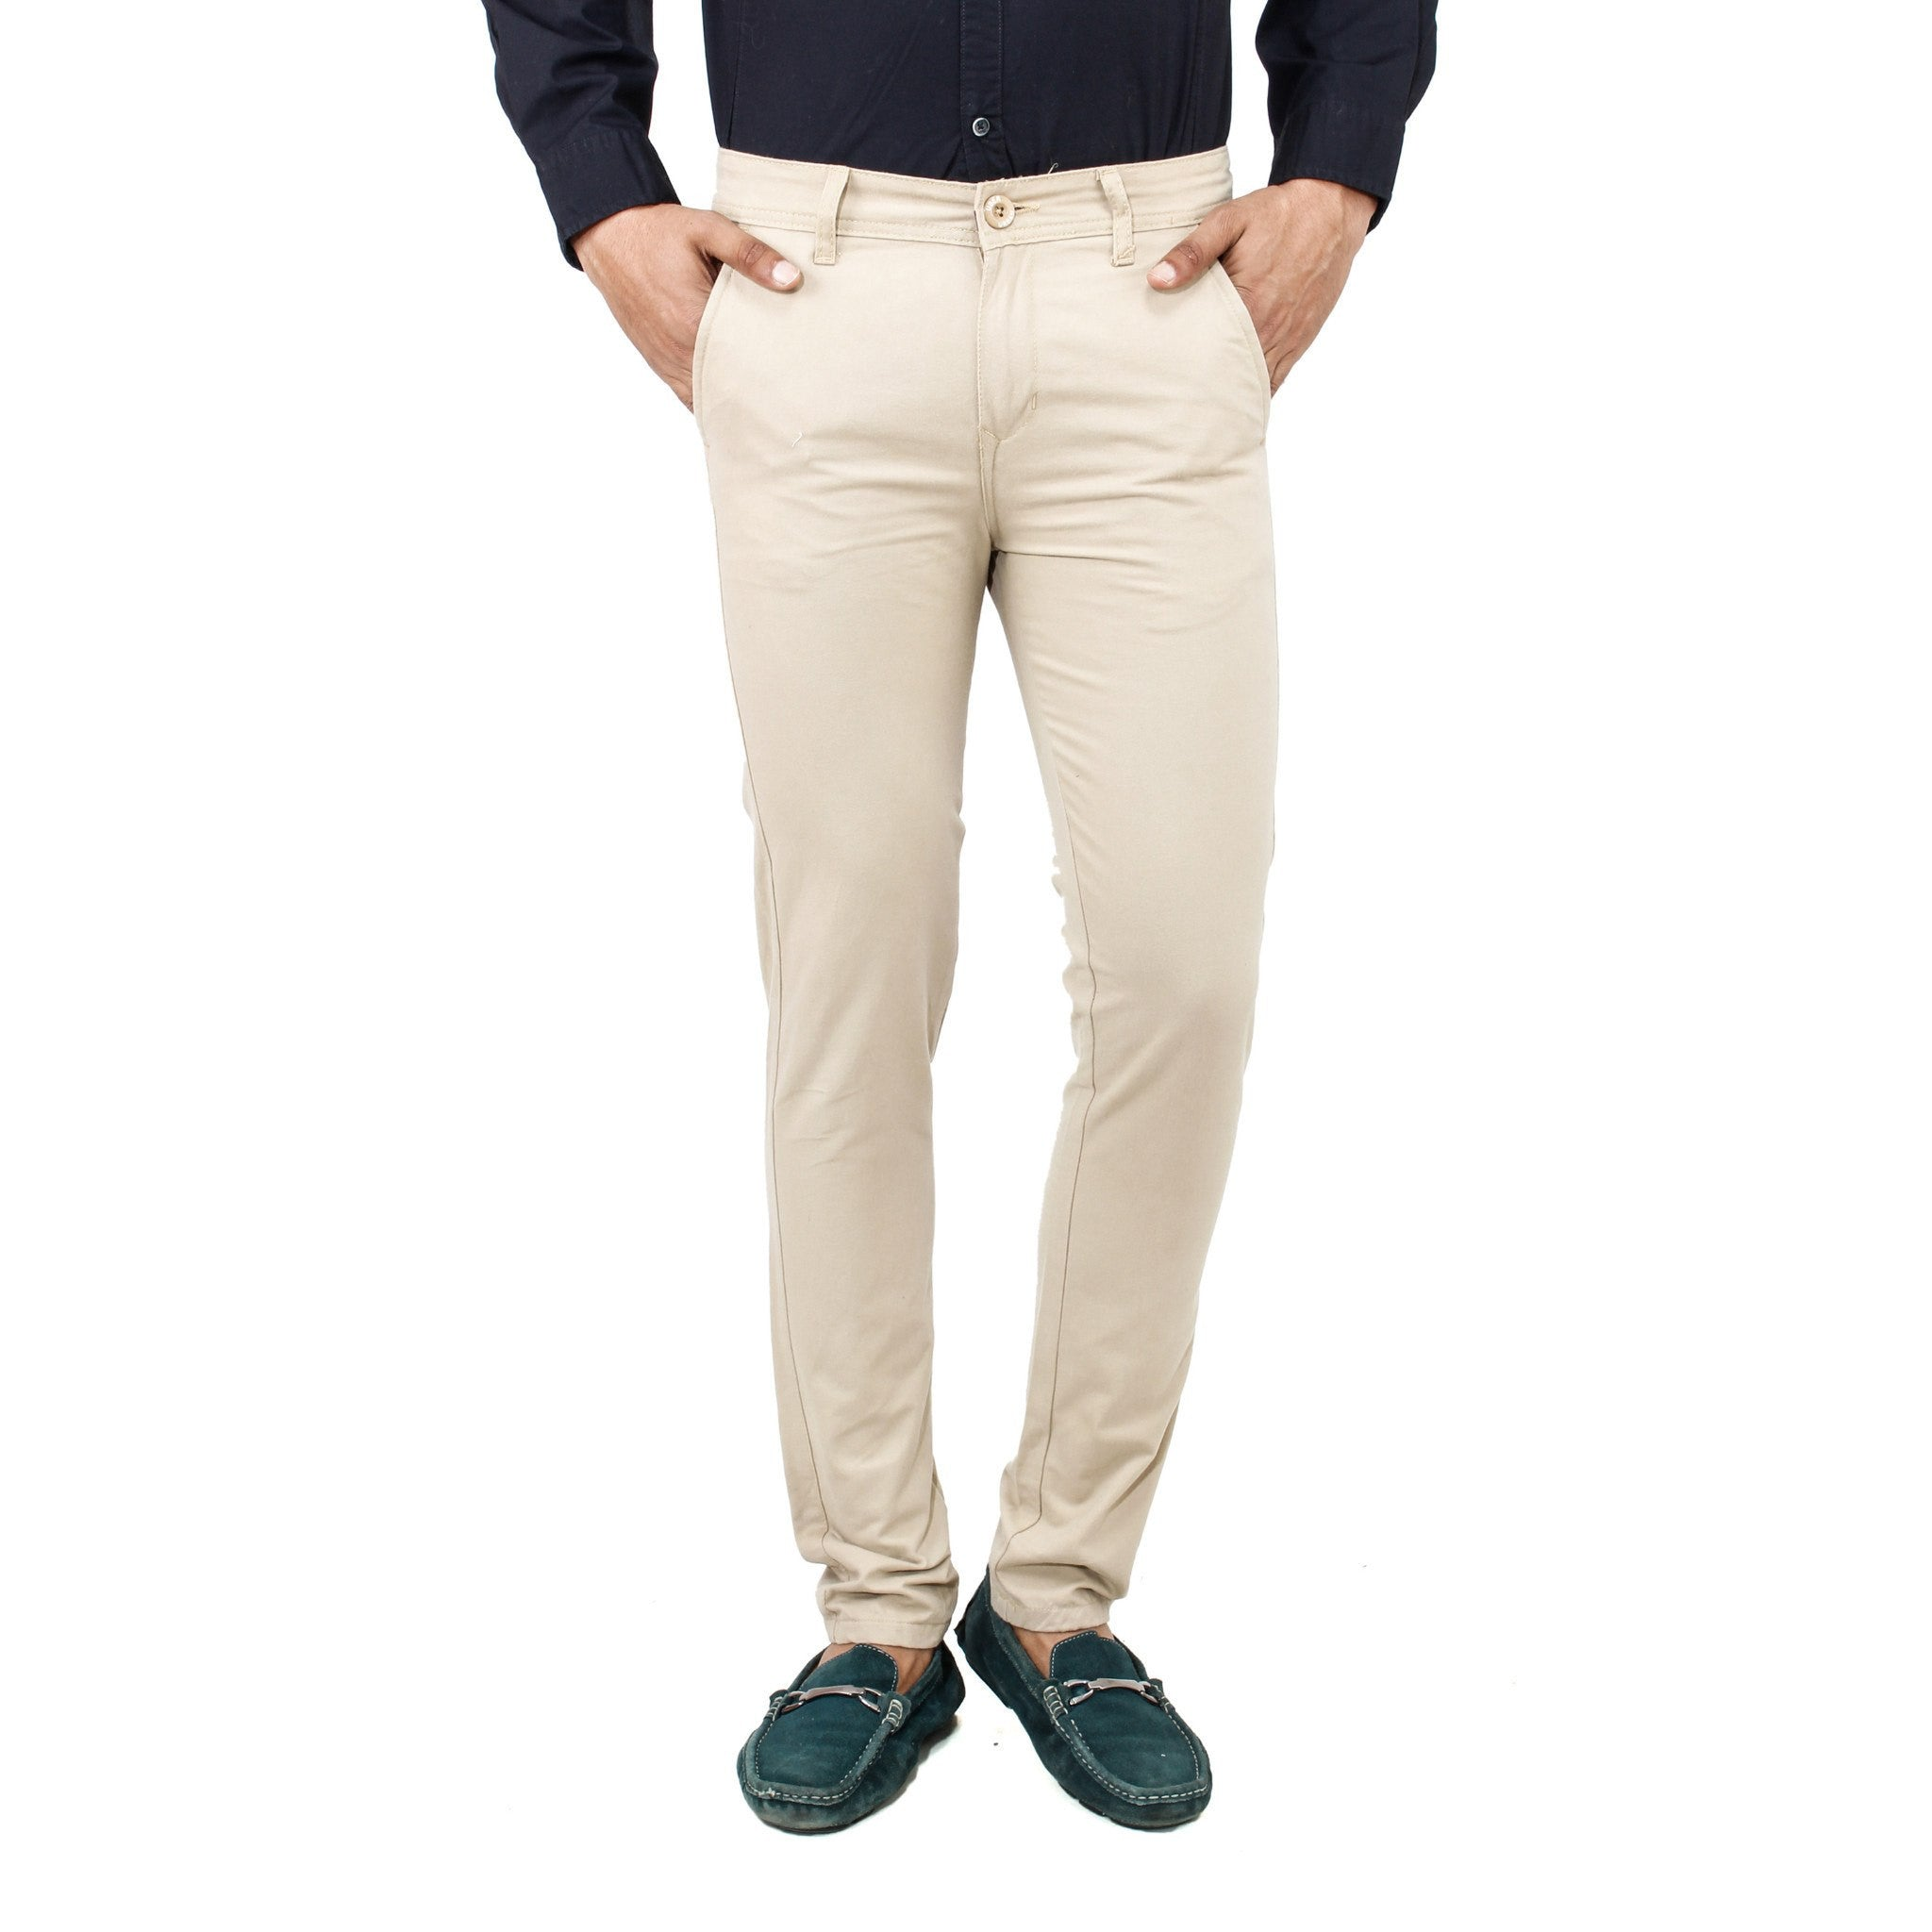 Uber Whitesmoke Rocky Trouser front view